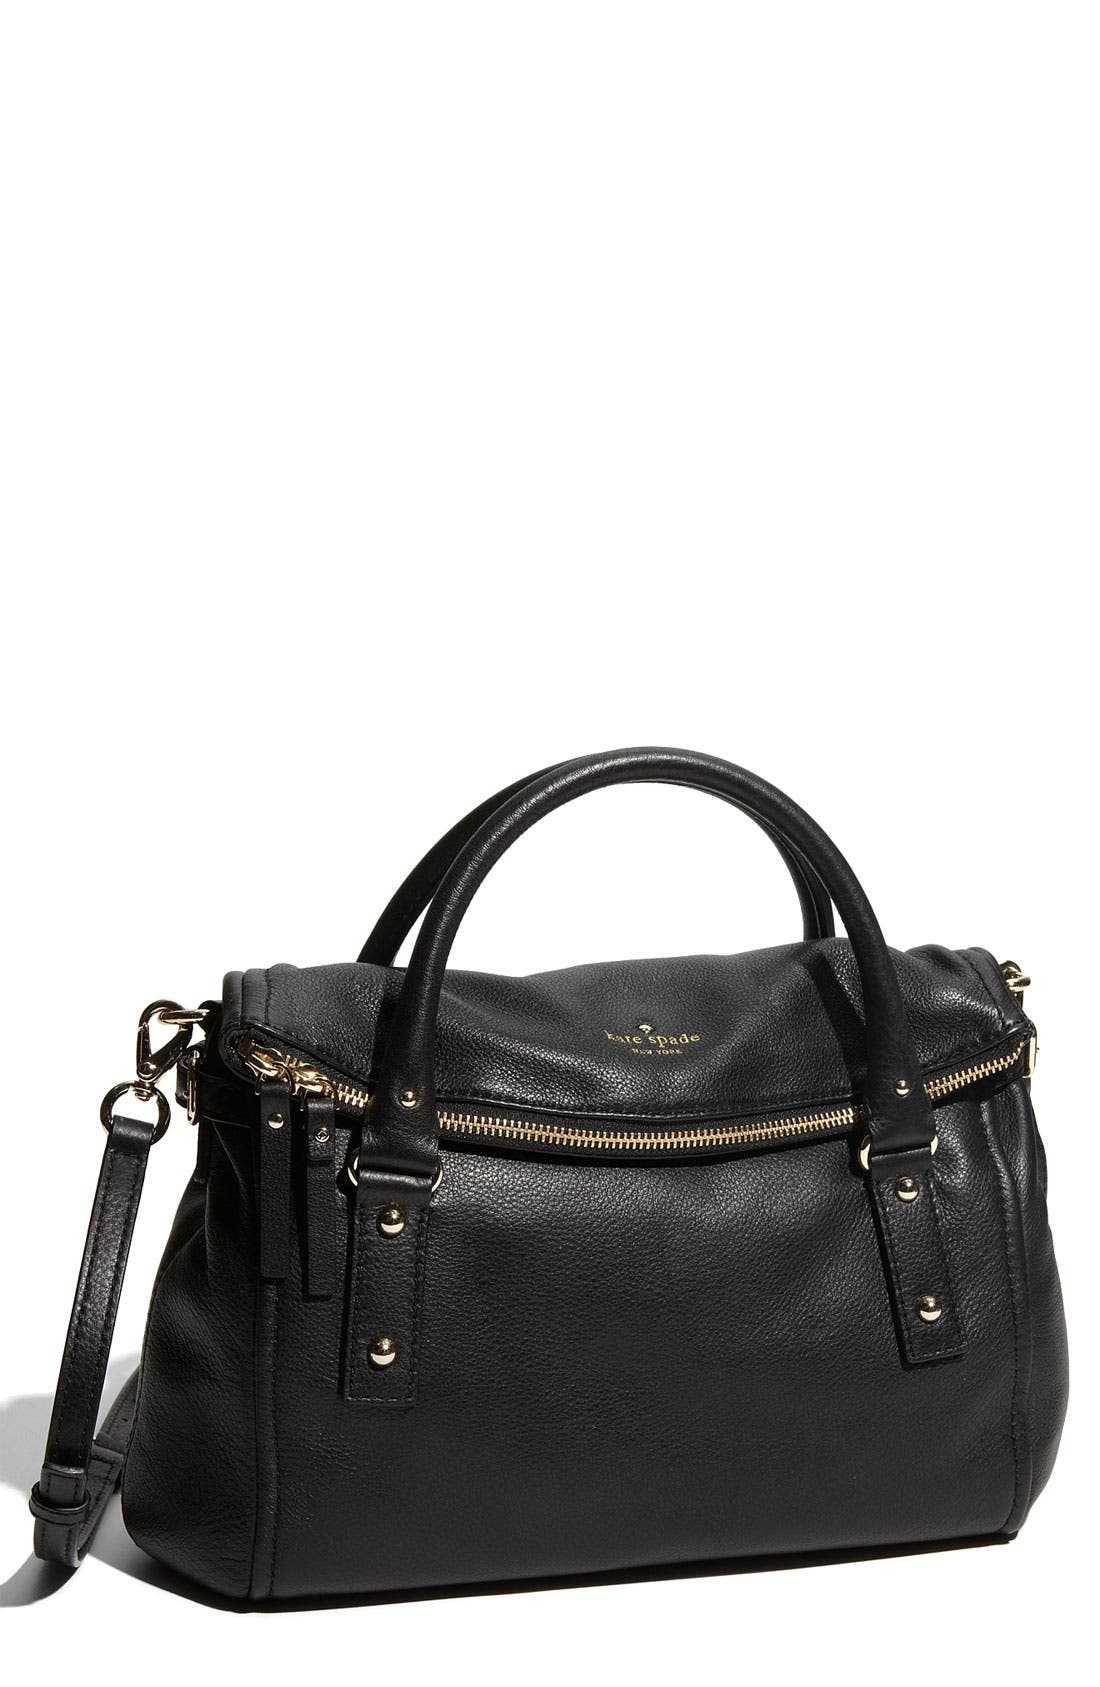 KATE SPADE NEW YORK, 'cobble hill - leslie small' leather satchel, Main thumbnail 1, color, 001